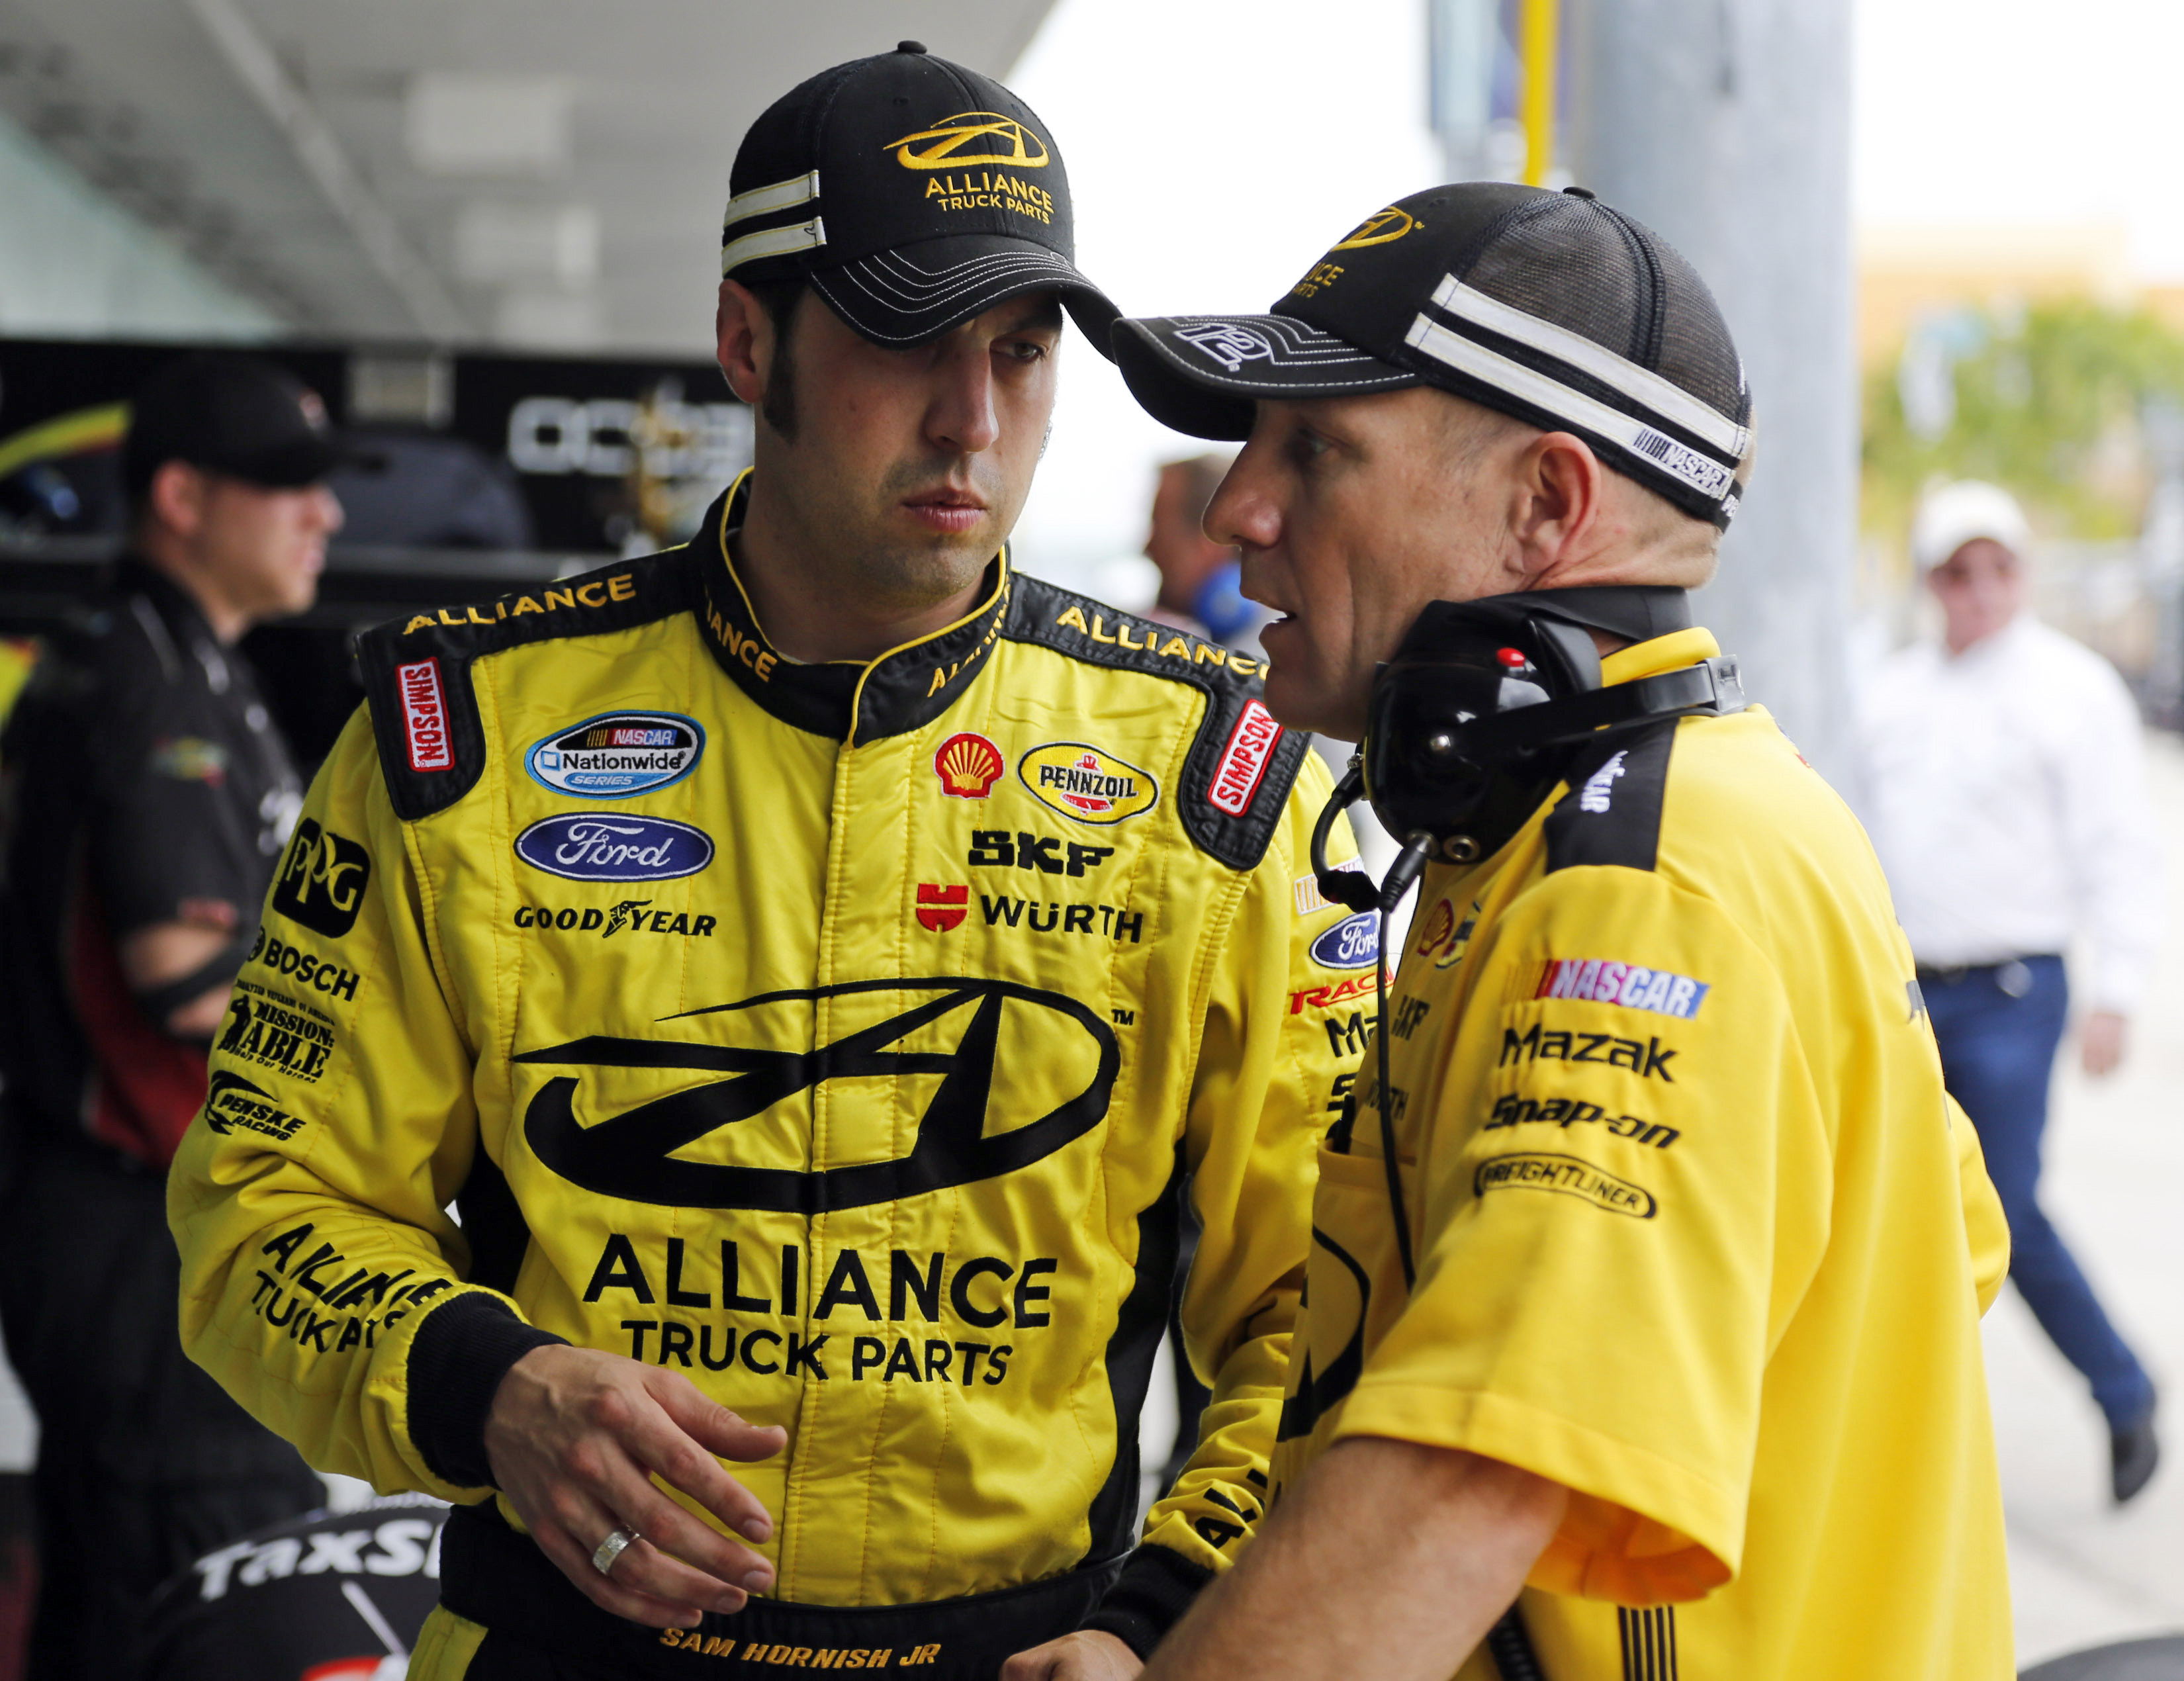 Penske, Hornish part ways after decade together